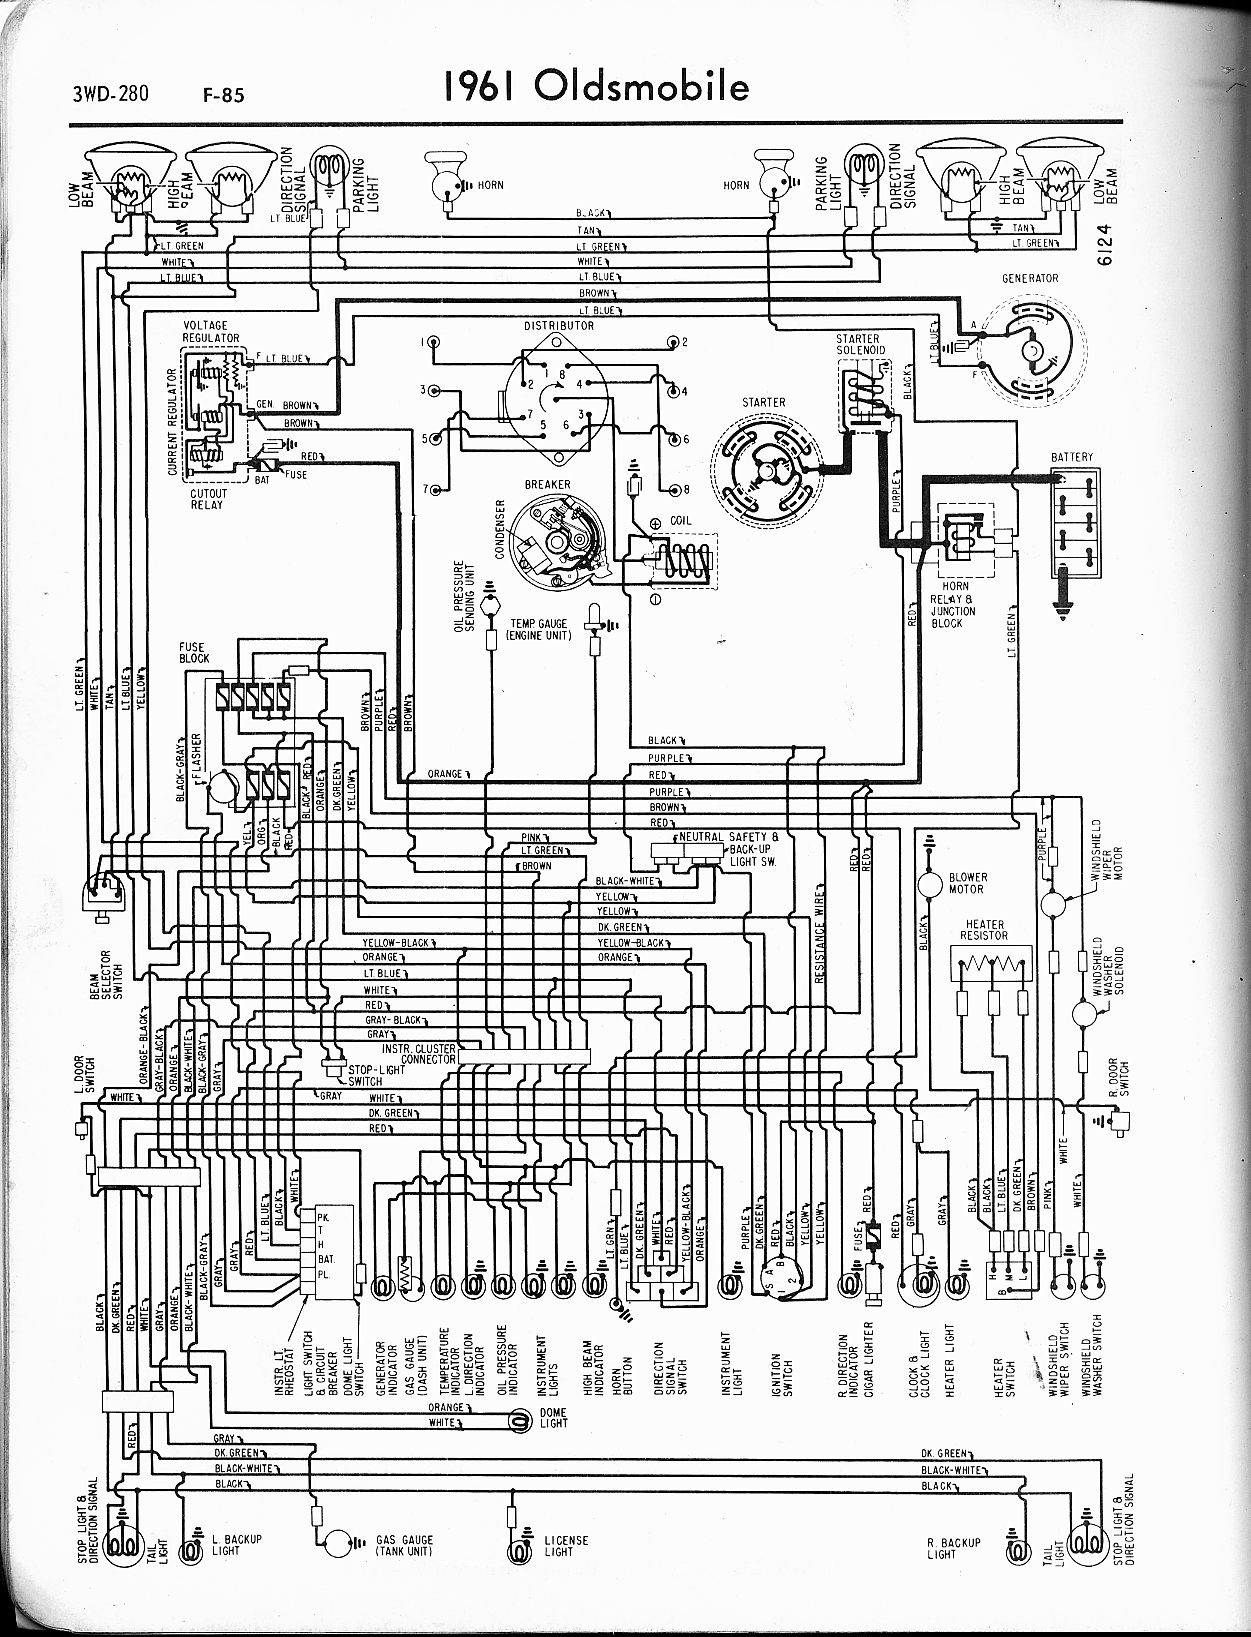 1967 Cutlass Wiring Diagram Color Schematics Diagrams 70 Vw Free Picture Schematic Oldsmobile The Old Car Manual Project Rh Oldcarmanualproject Com Mustang Pdf Ford